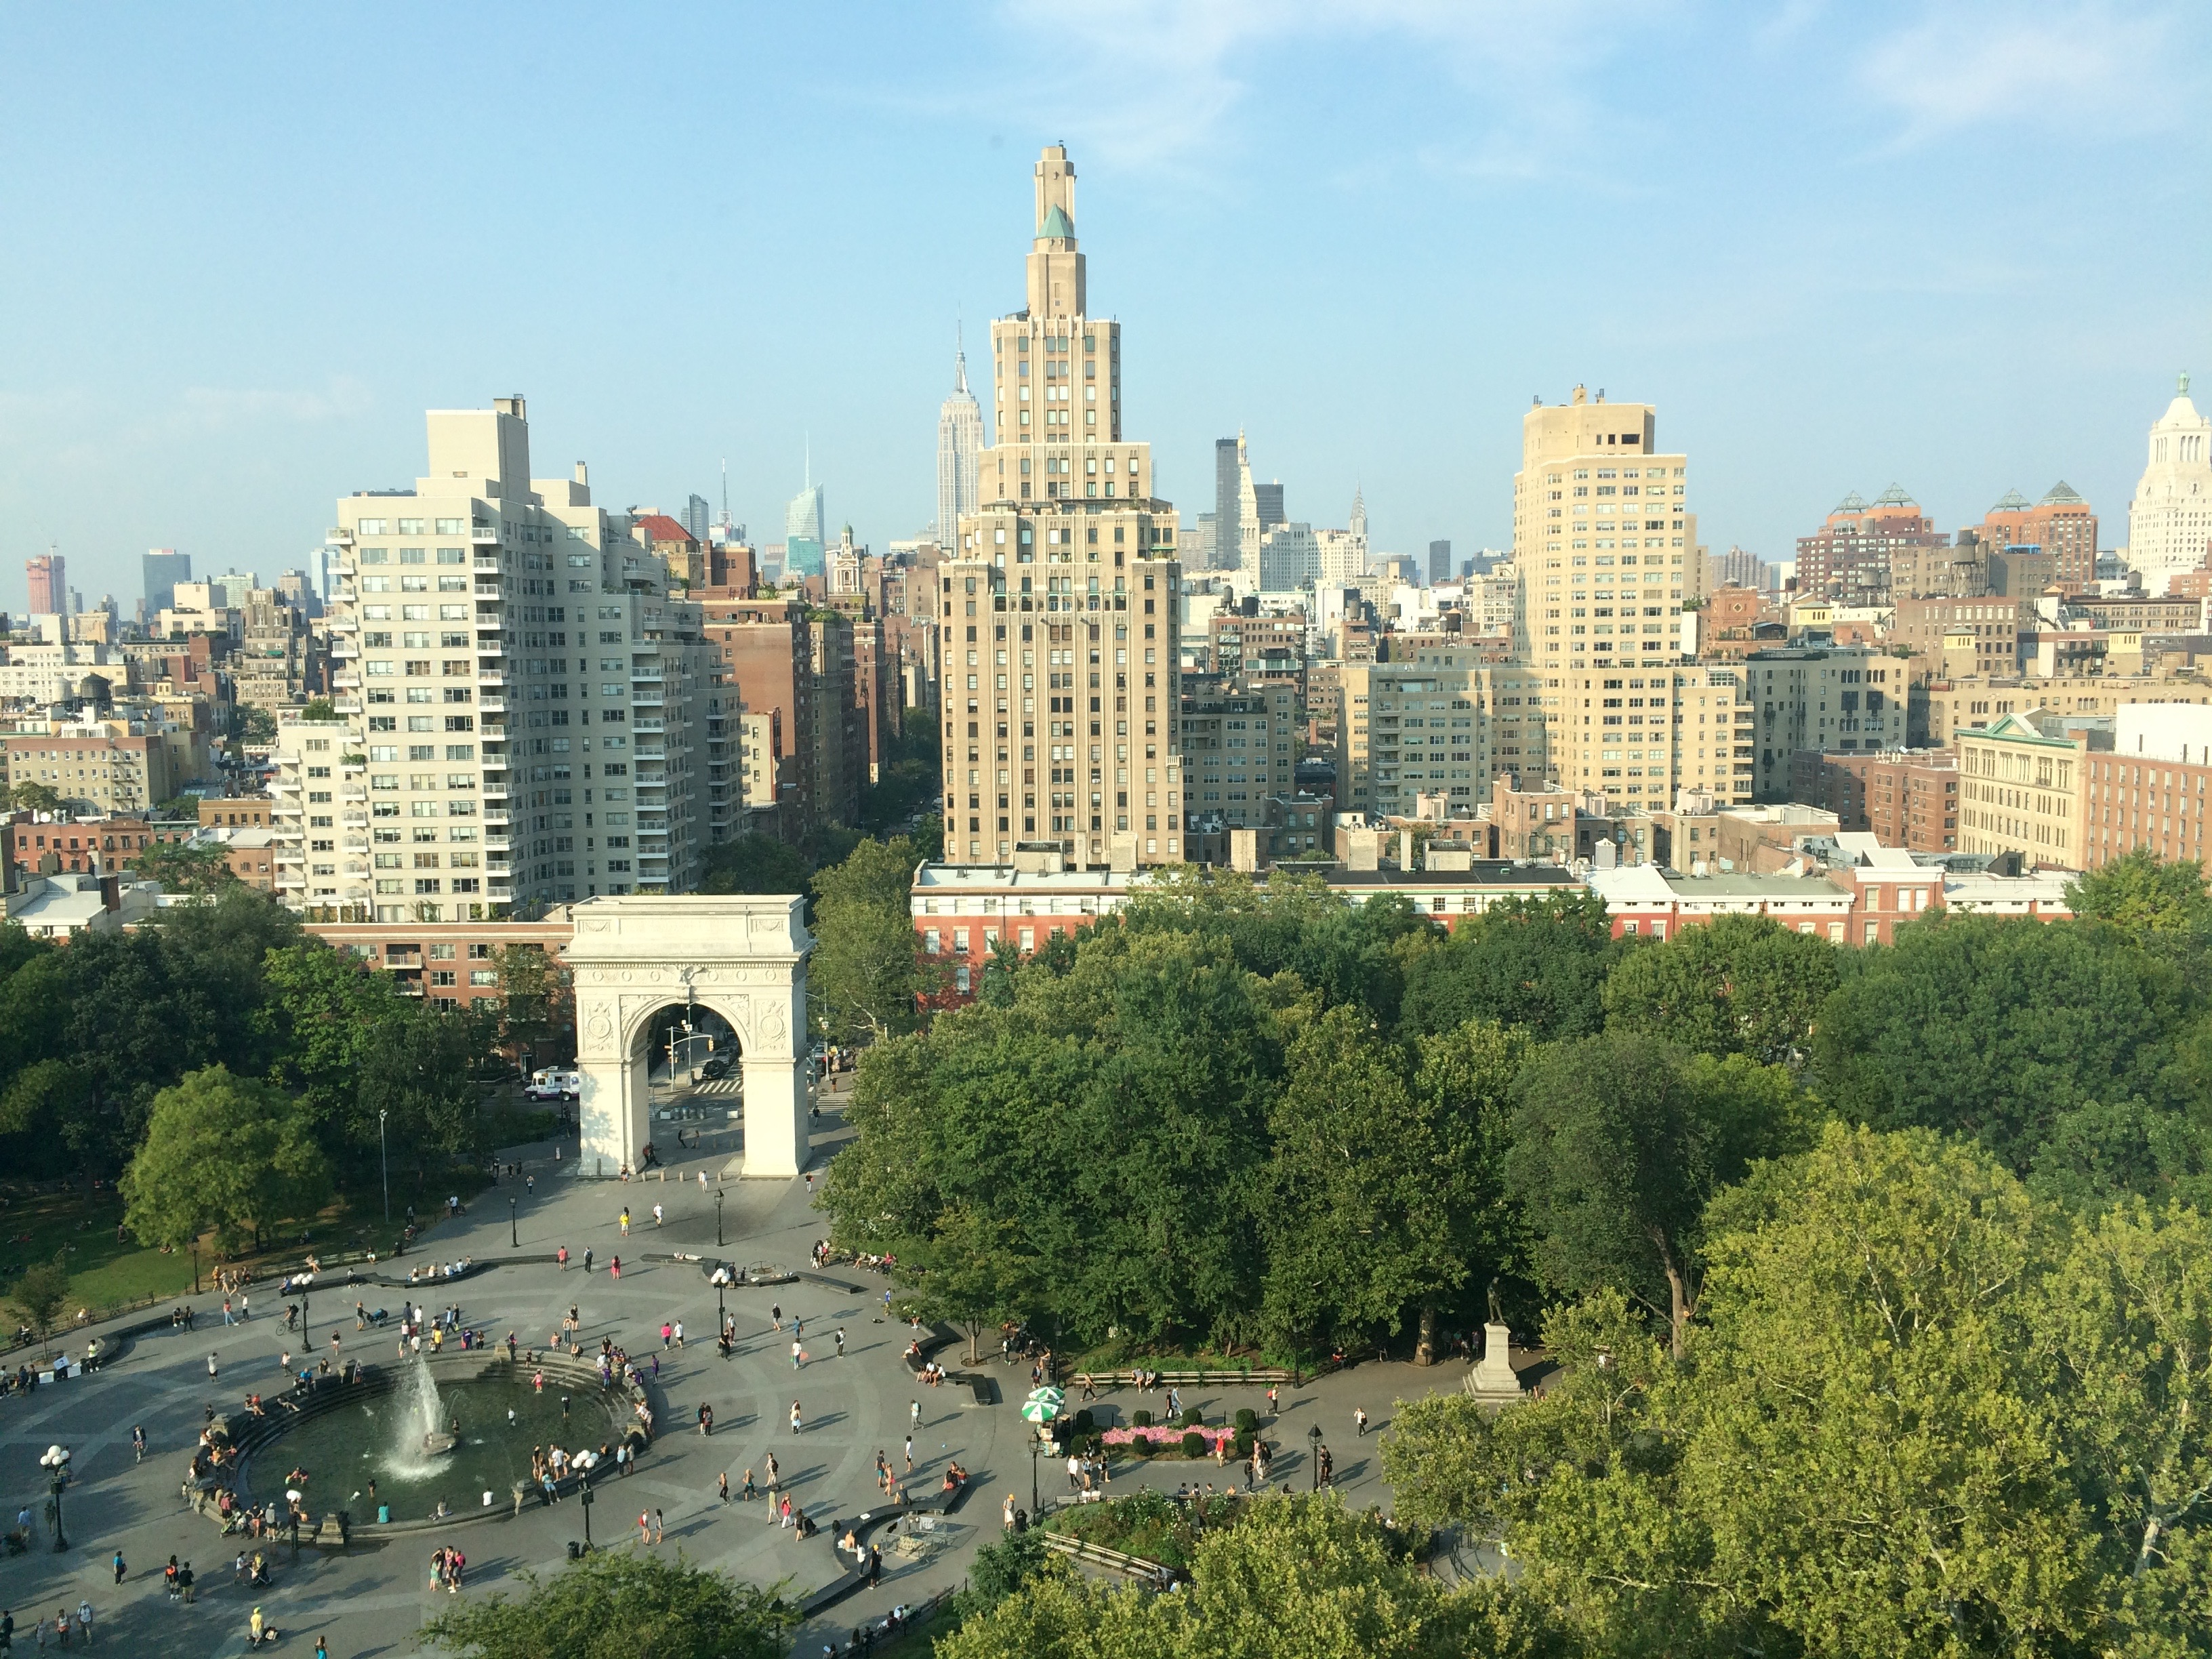 Washington Square Park seen from above.